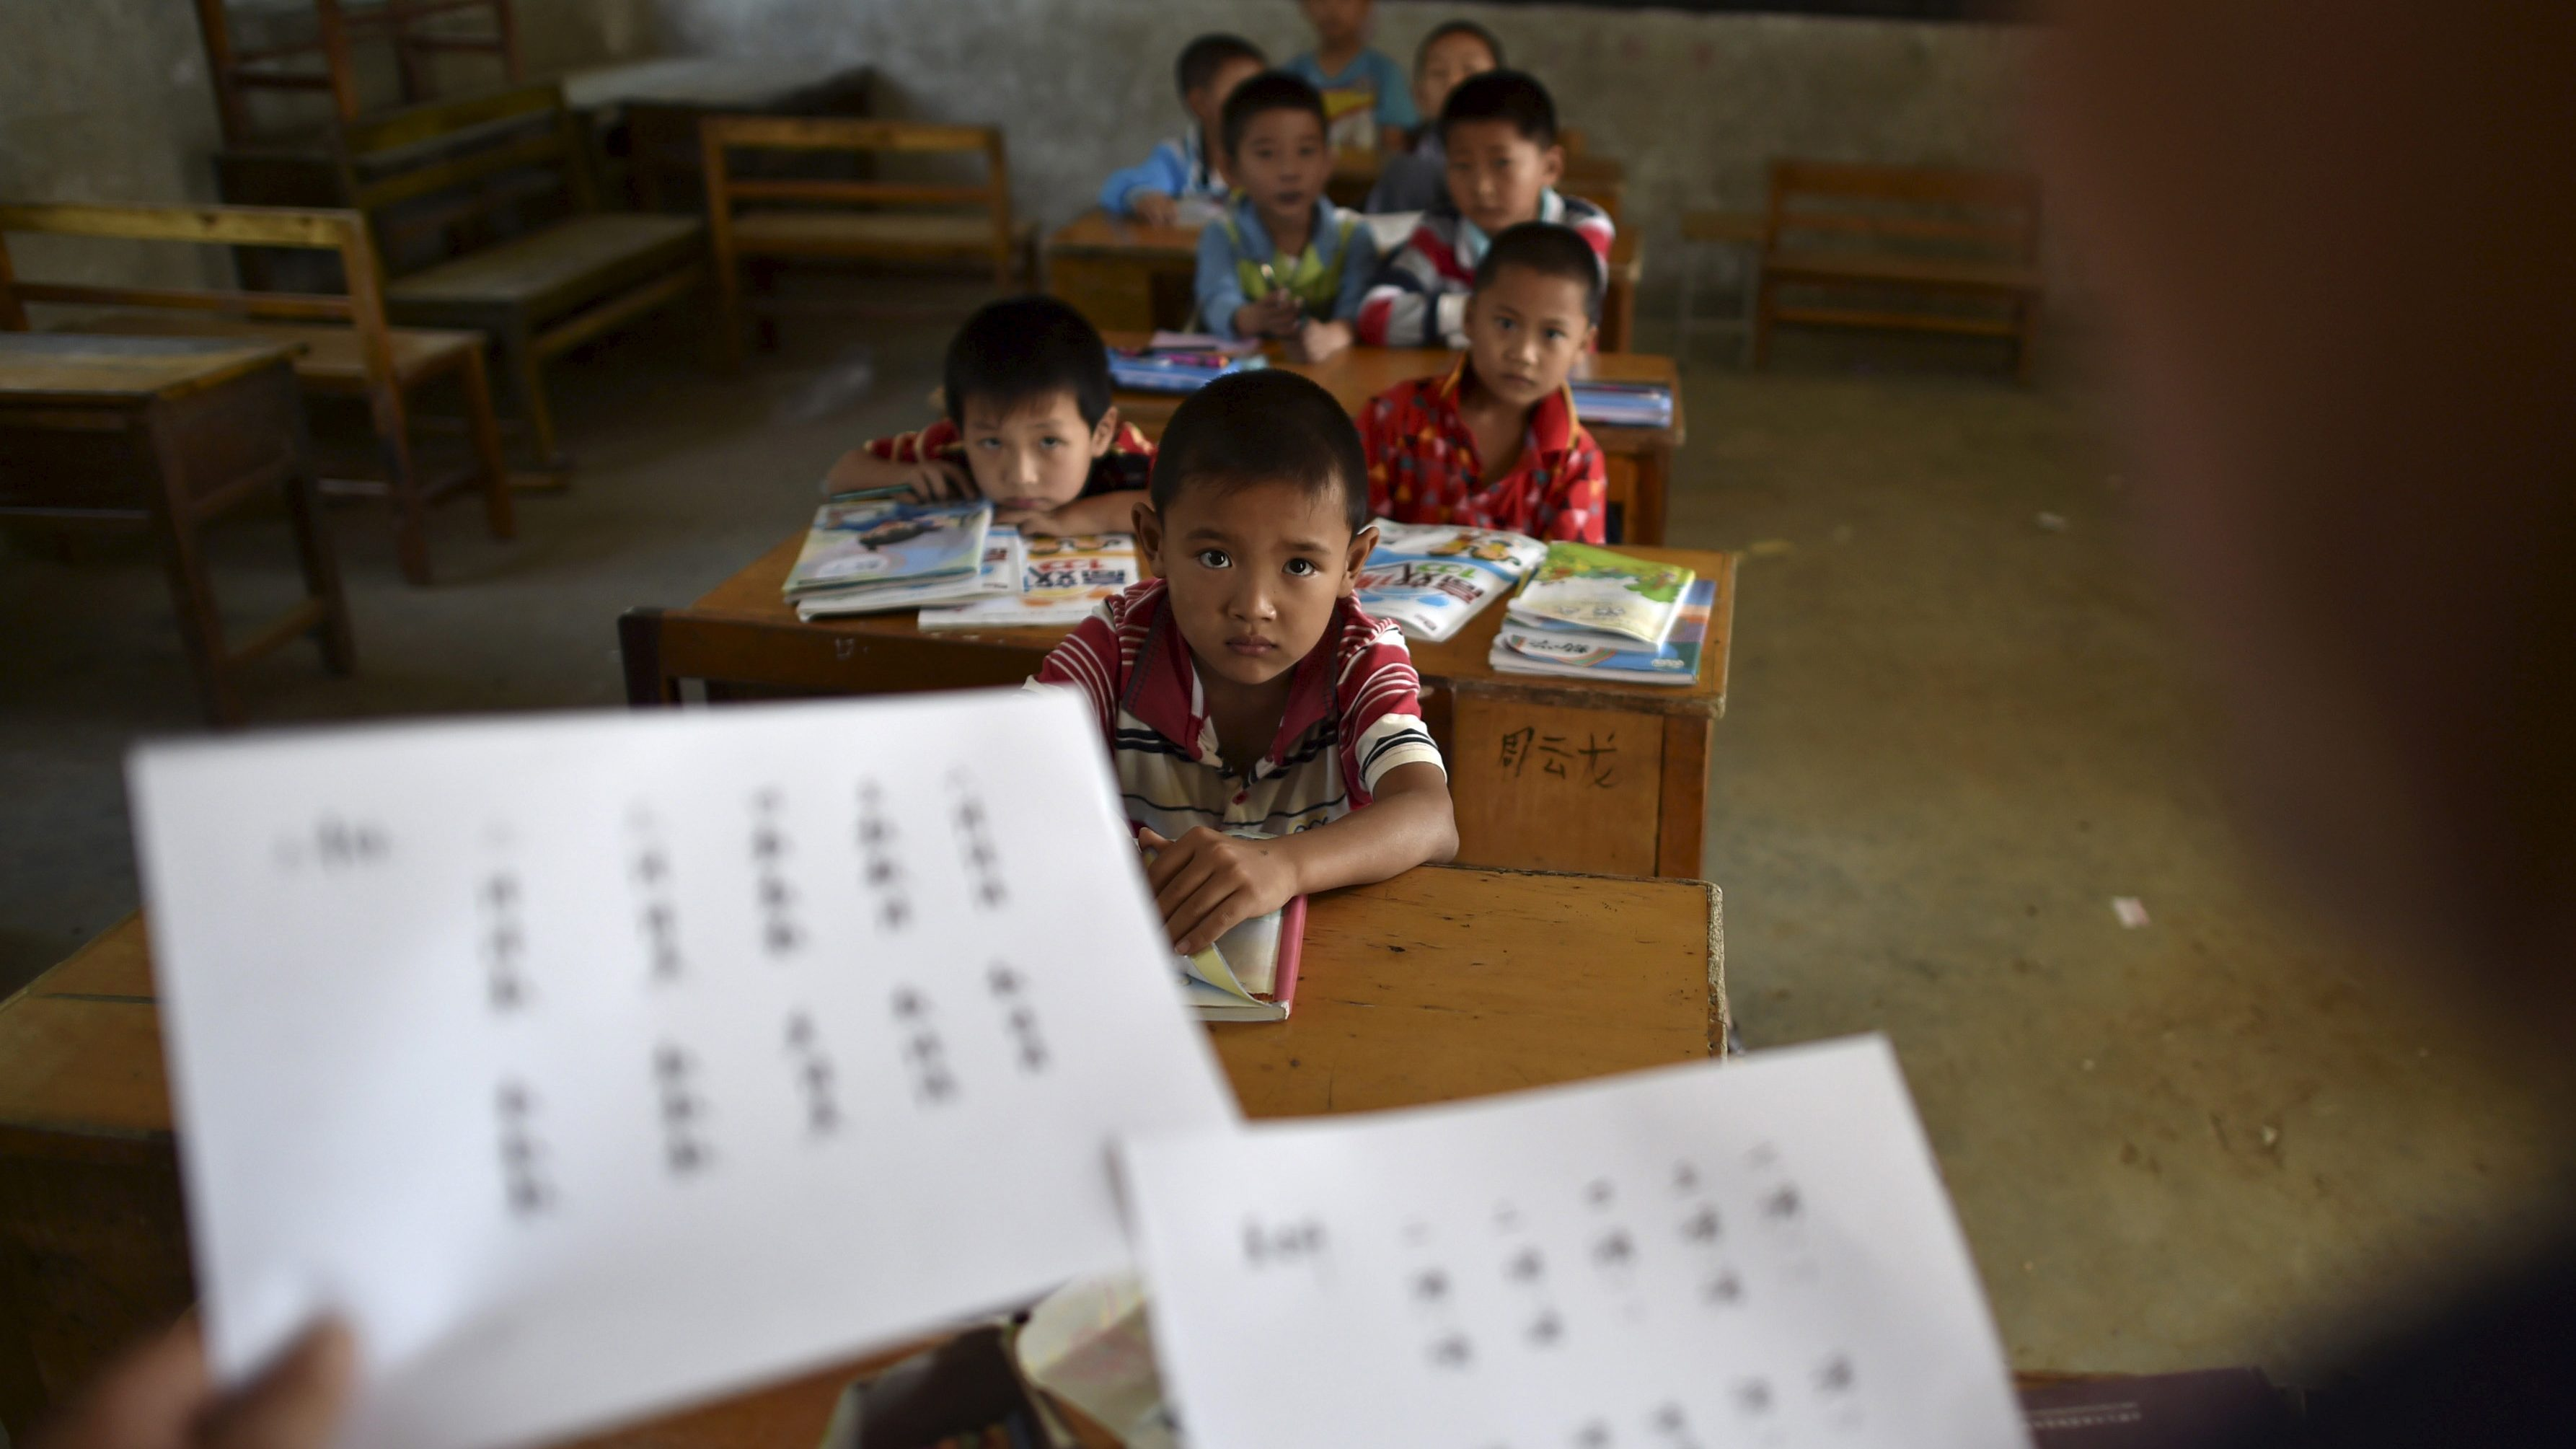 """Students look at their teacher holding papers of the new curriculum at a classroom of Dalu primary school in Gucheng township of Hefei, Anhui province, China, September 8, 2015. The school, opened in 2006 and has never acquired a legal license, may face a shutdown order from the government. There are currently over 160 students in the school, mostly """"leftover children"""", whose parents left their hometown to earn a living, local media reported. Picture taken September 8, 2015."""